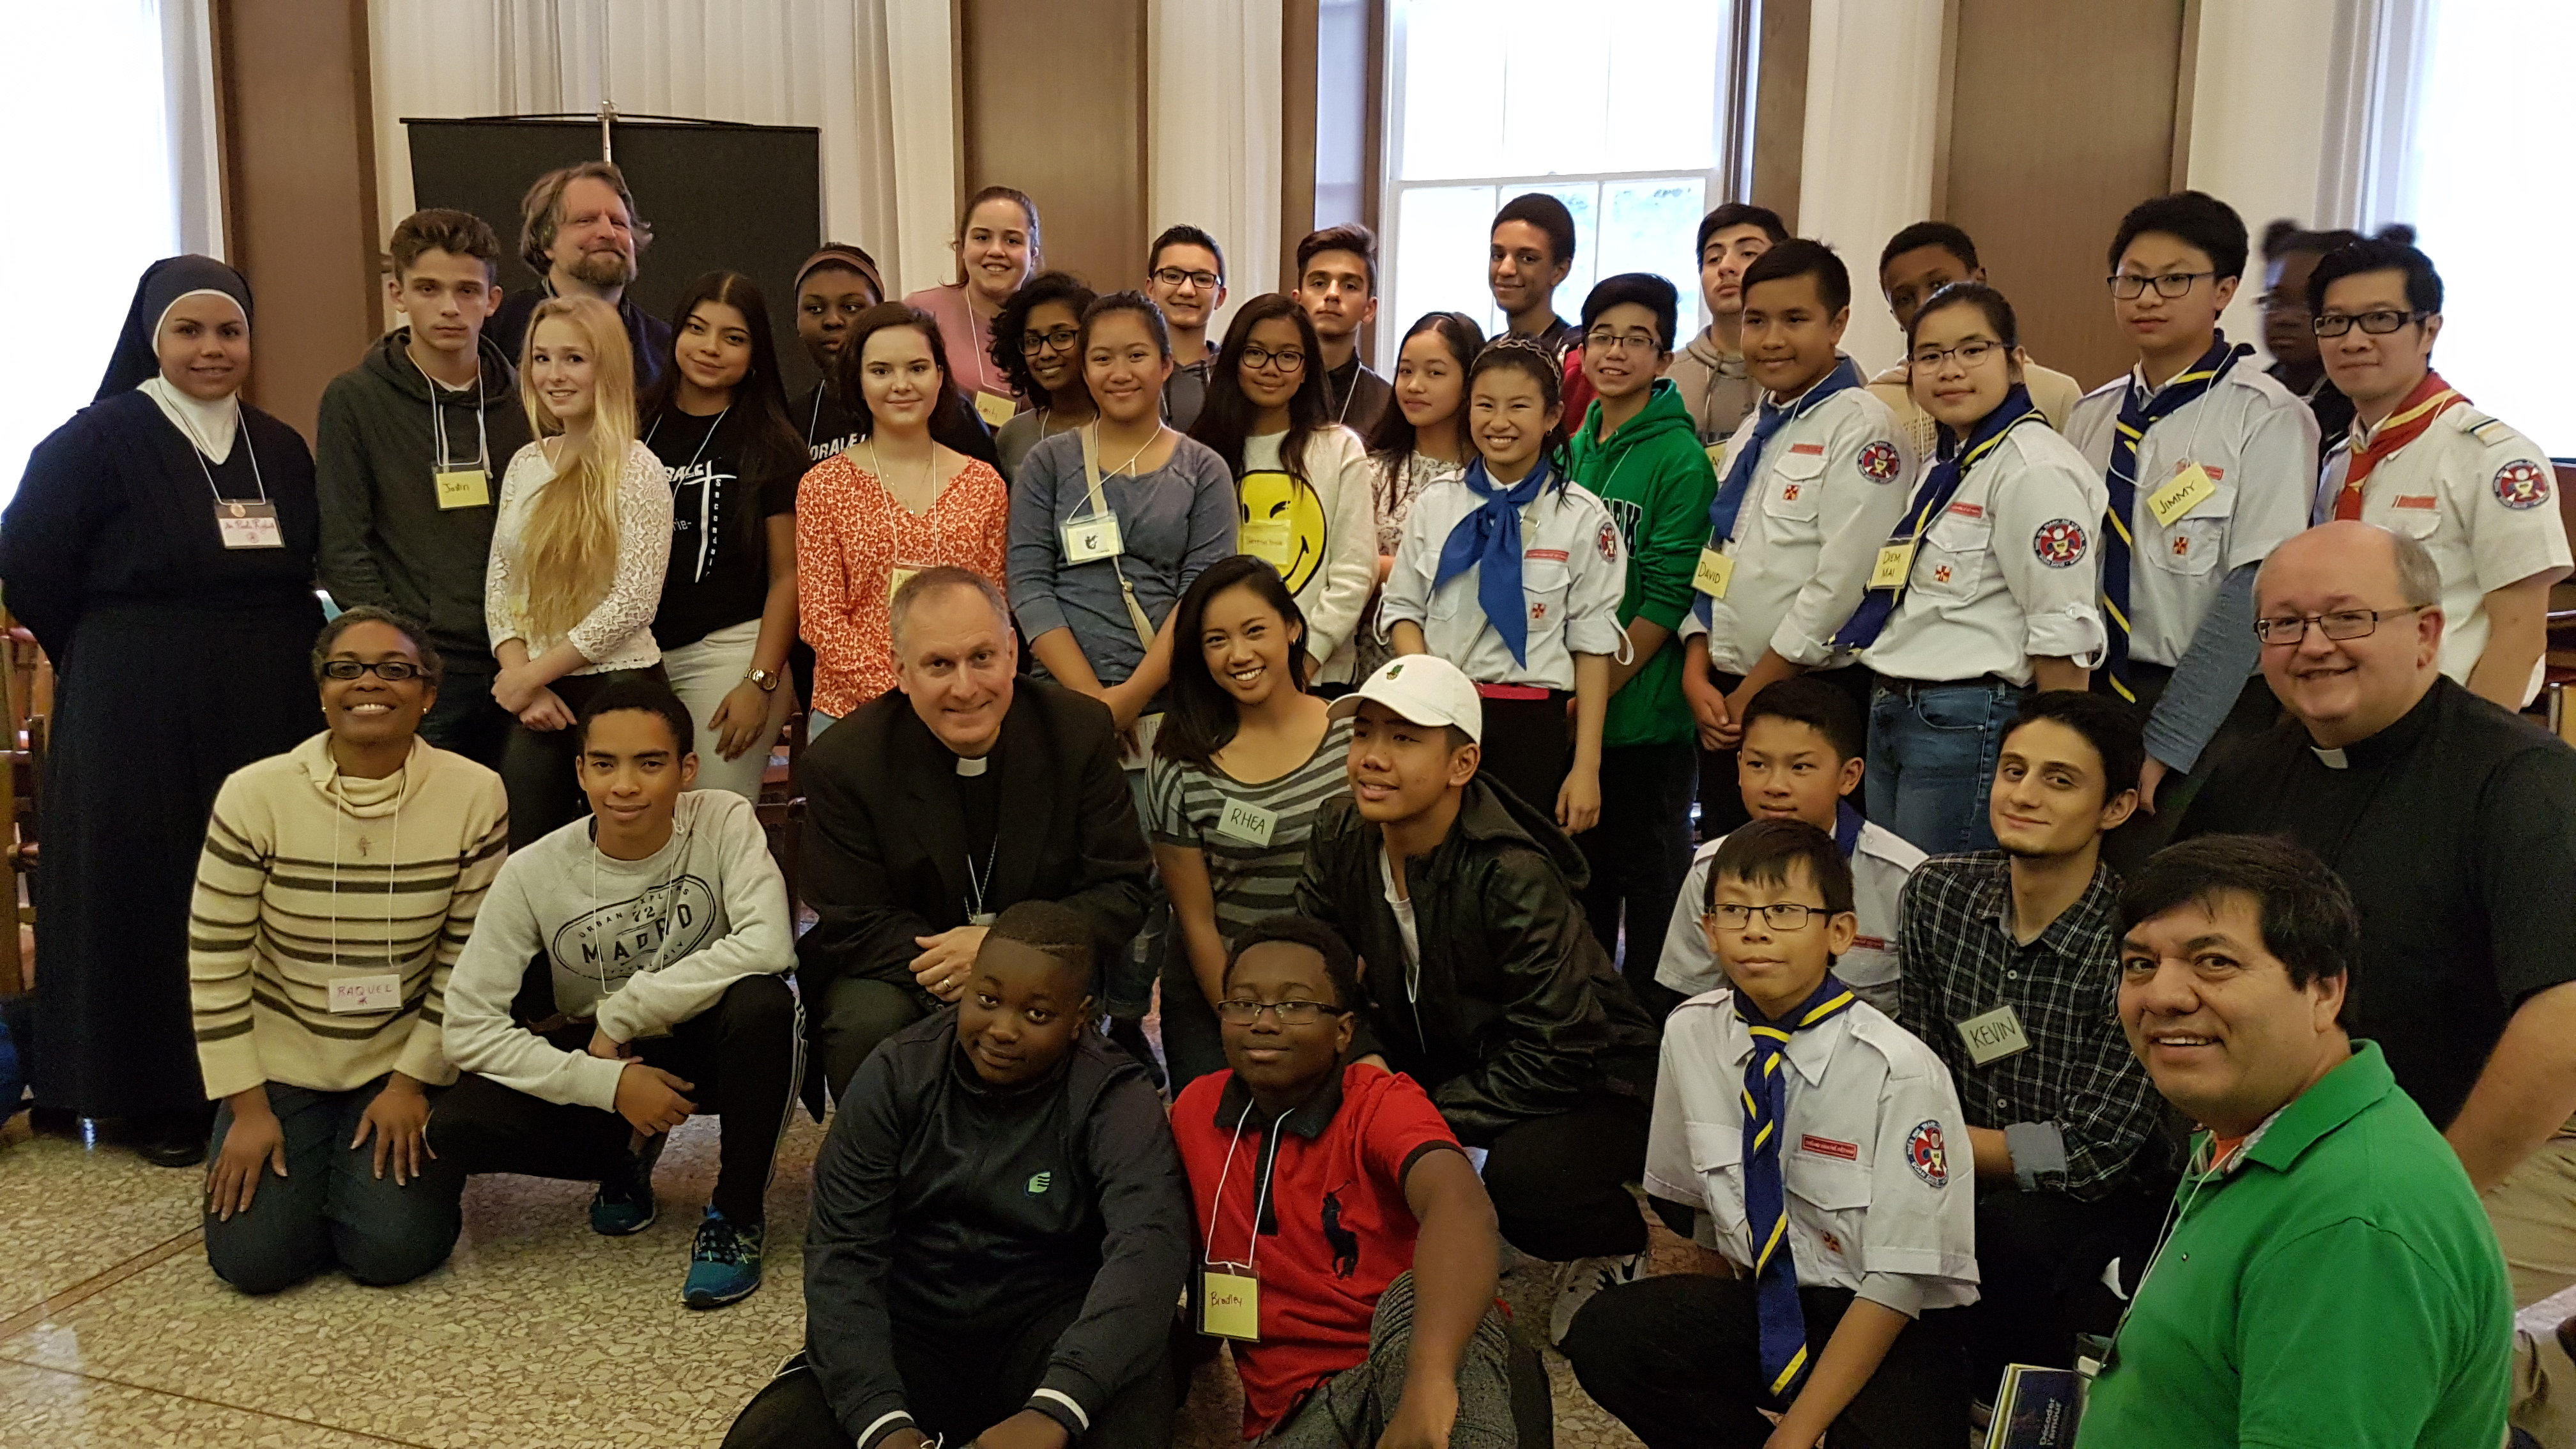 Young people gathered for the Youth Forum held at the Grand Séminaire de Montréal